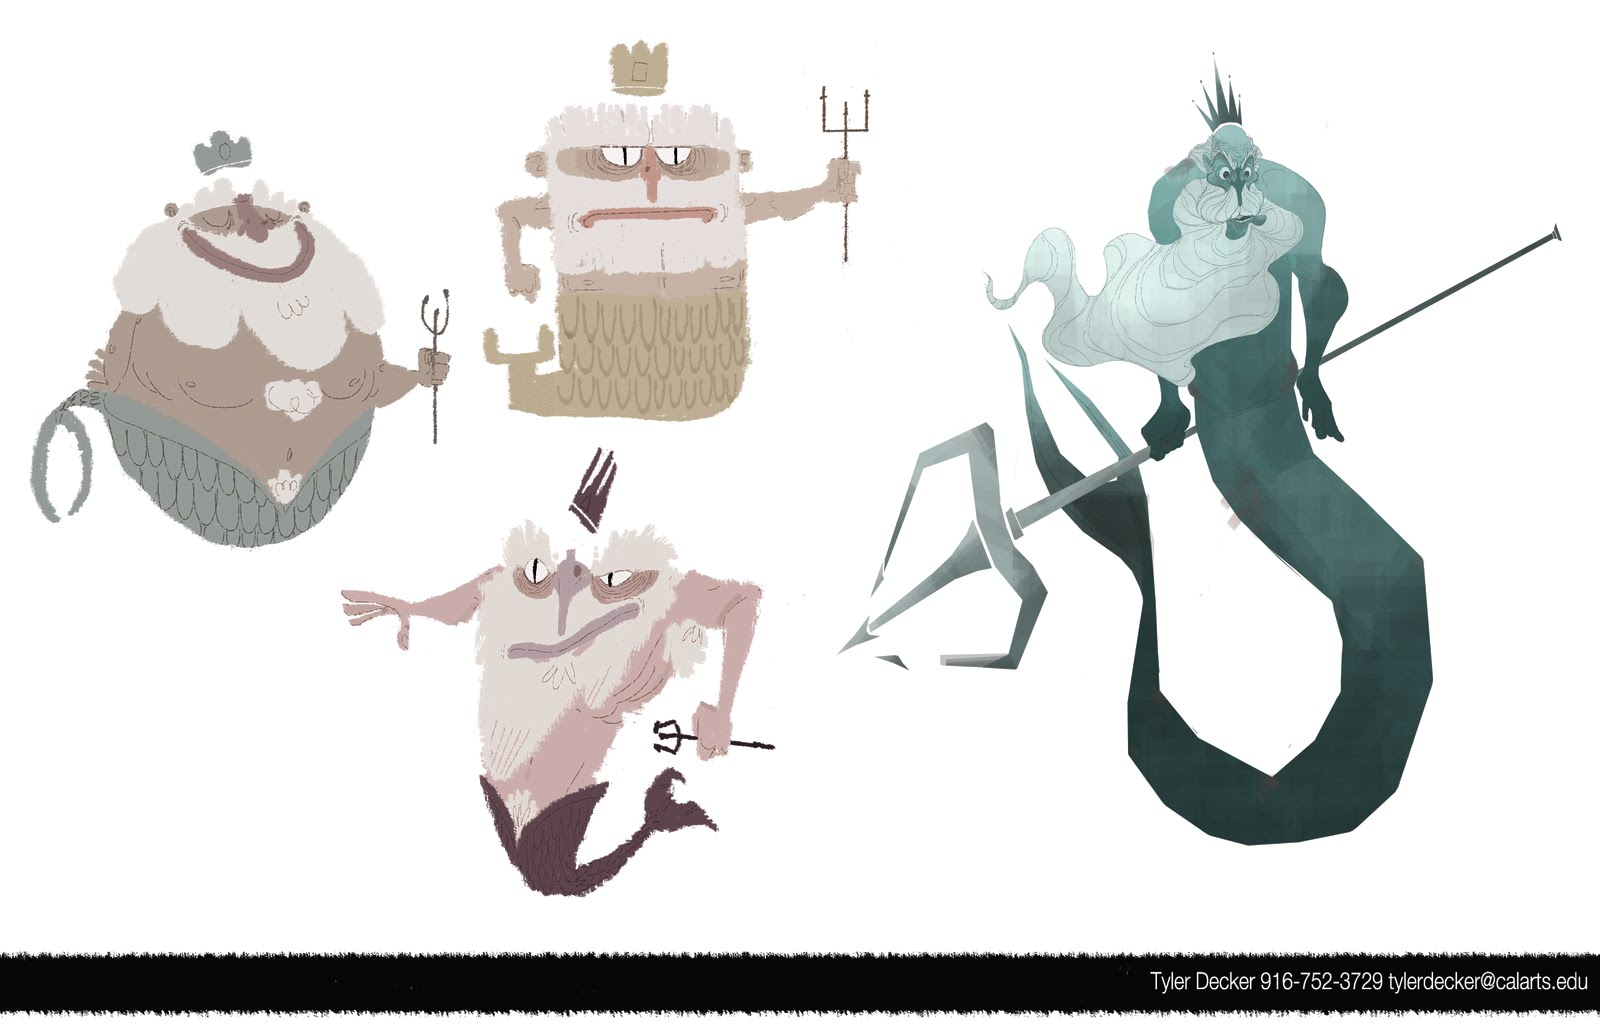 Character Design Visual Development Portfolio : Tyler decker portfolio character design